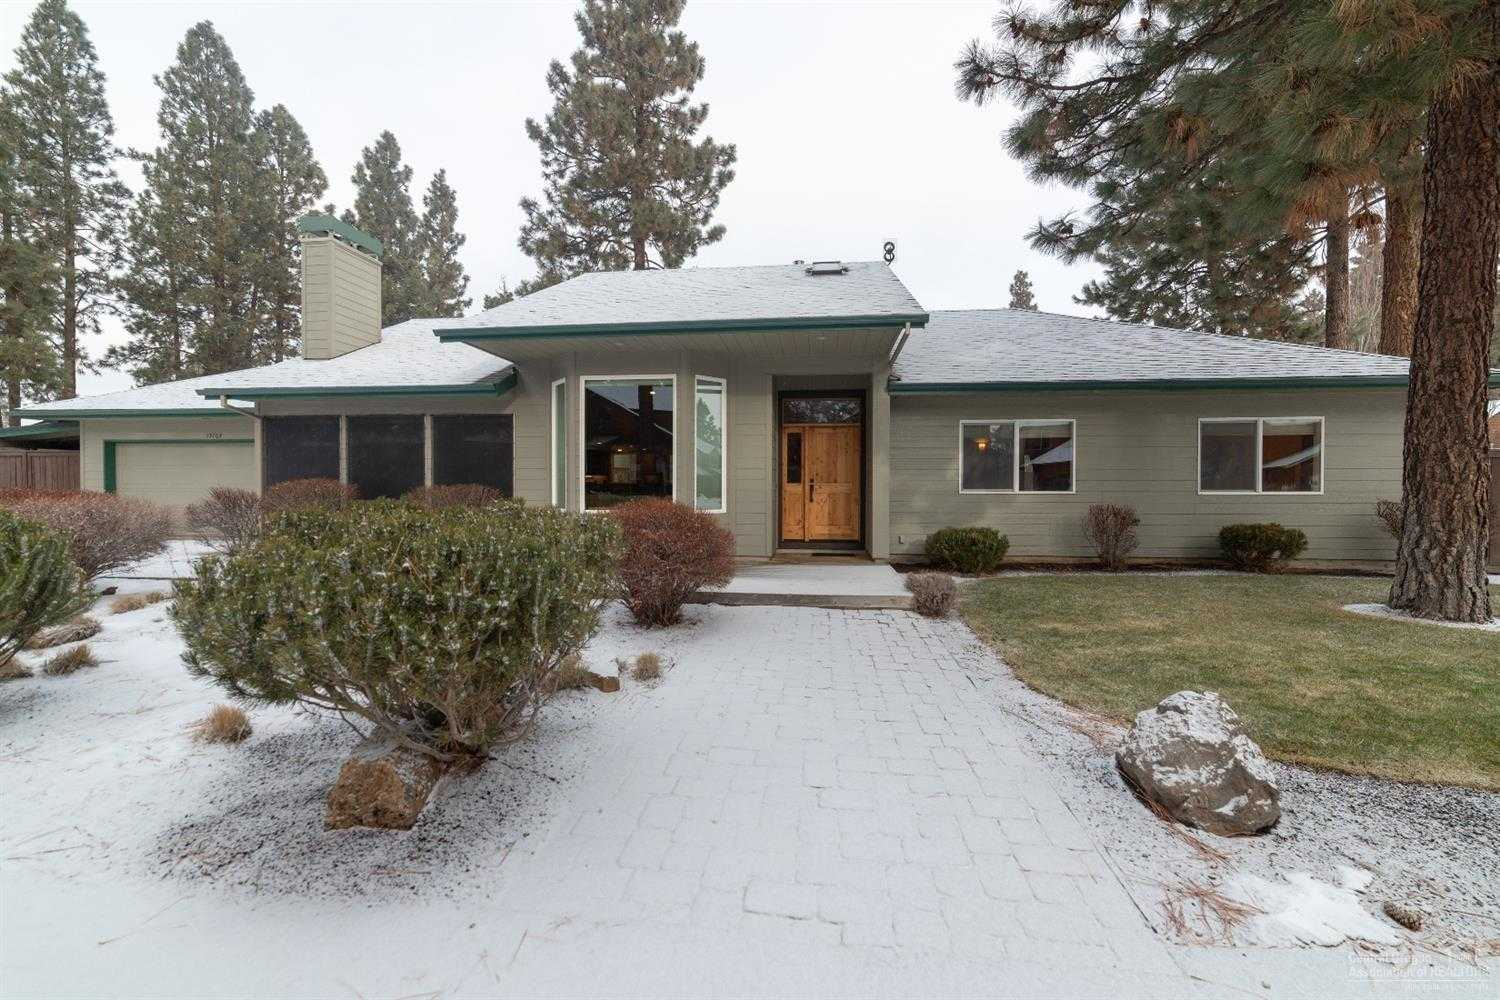 $459,900 - 3Br/2Ba -  for Sale in Bend